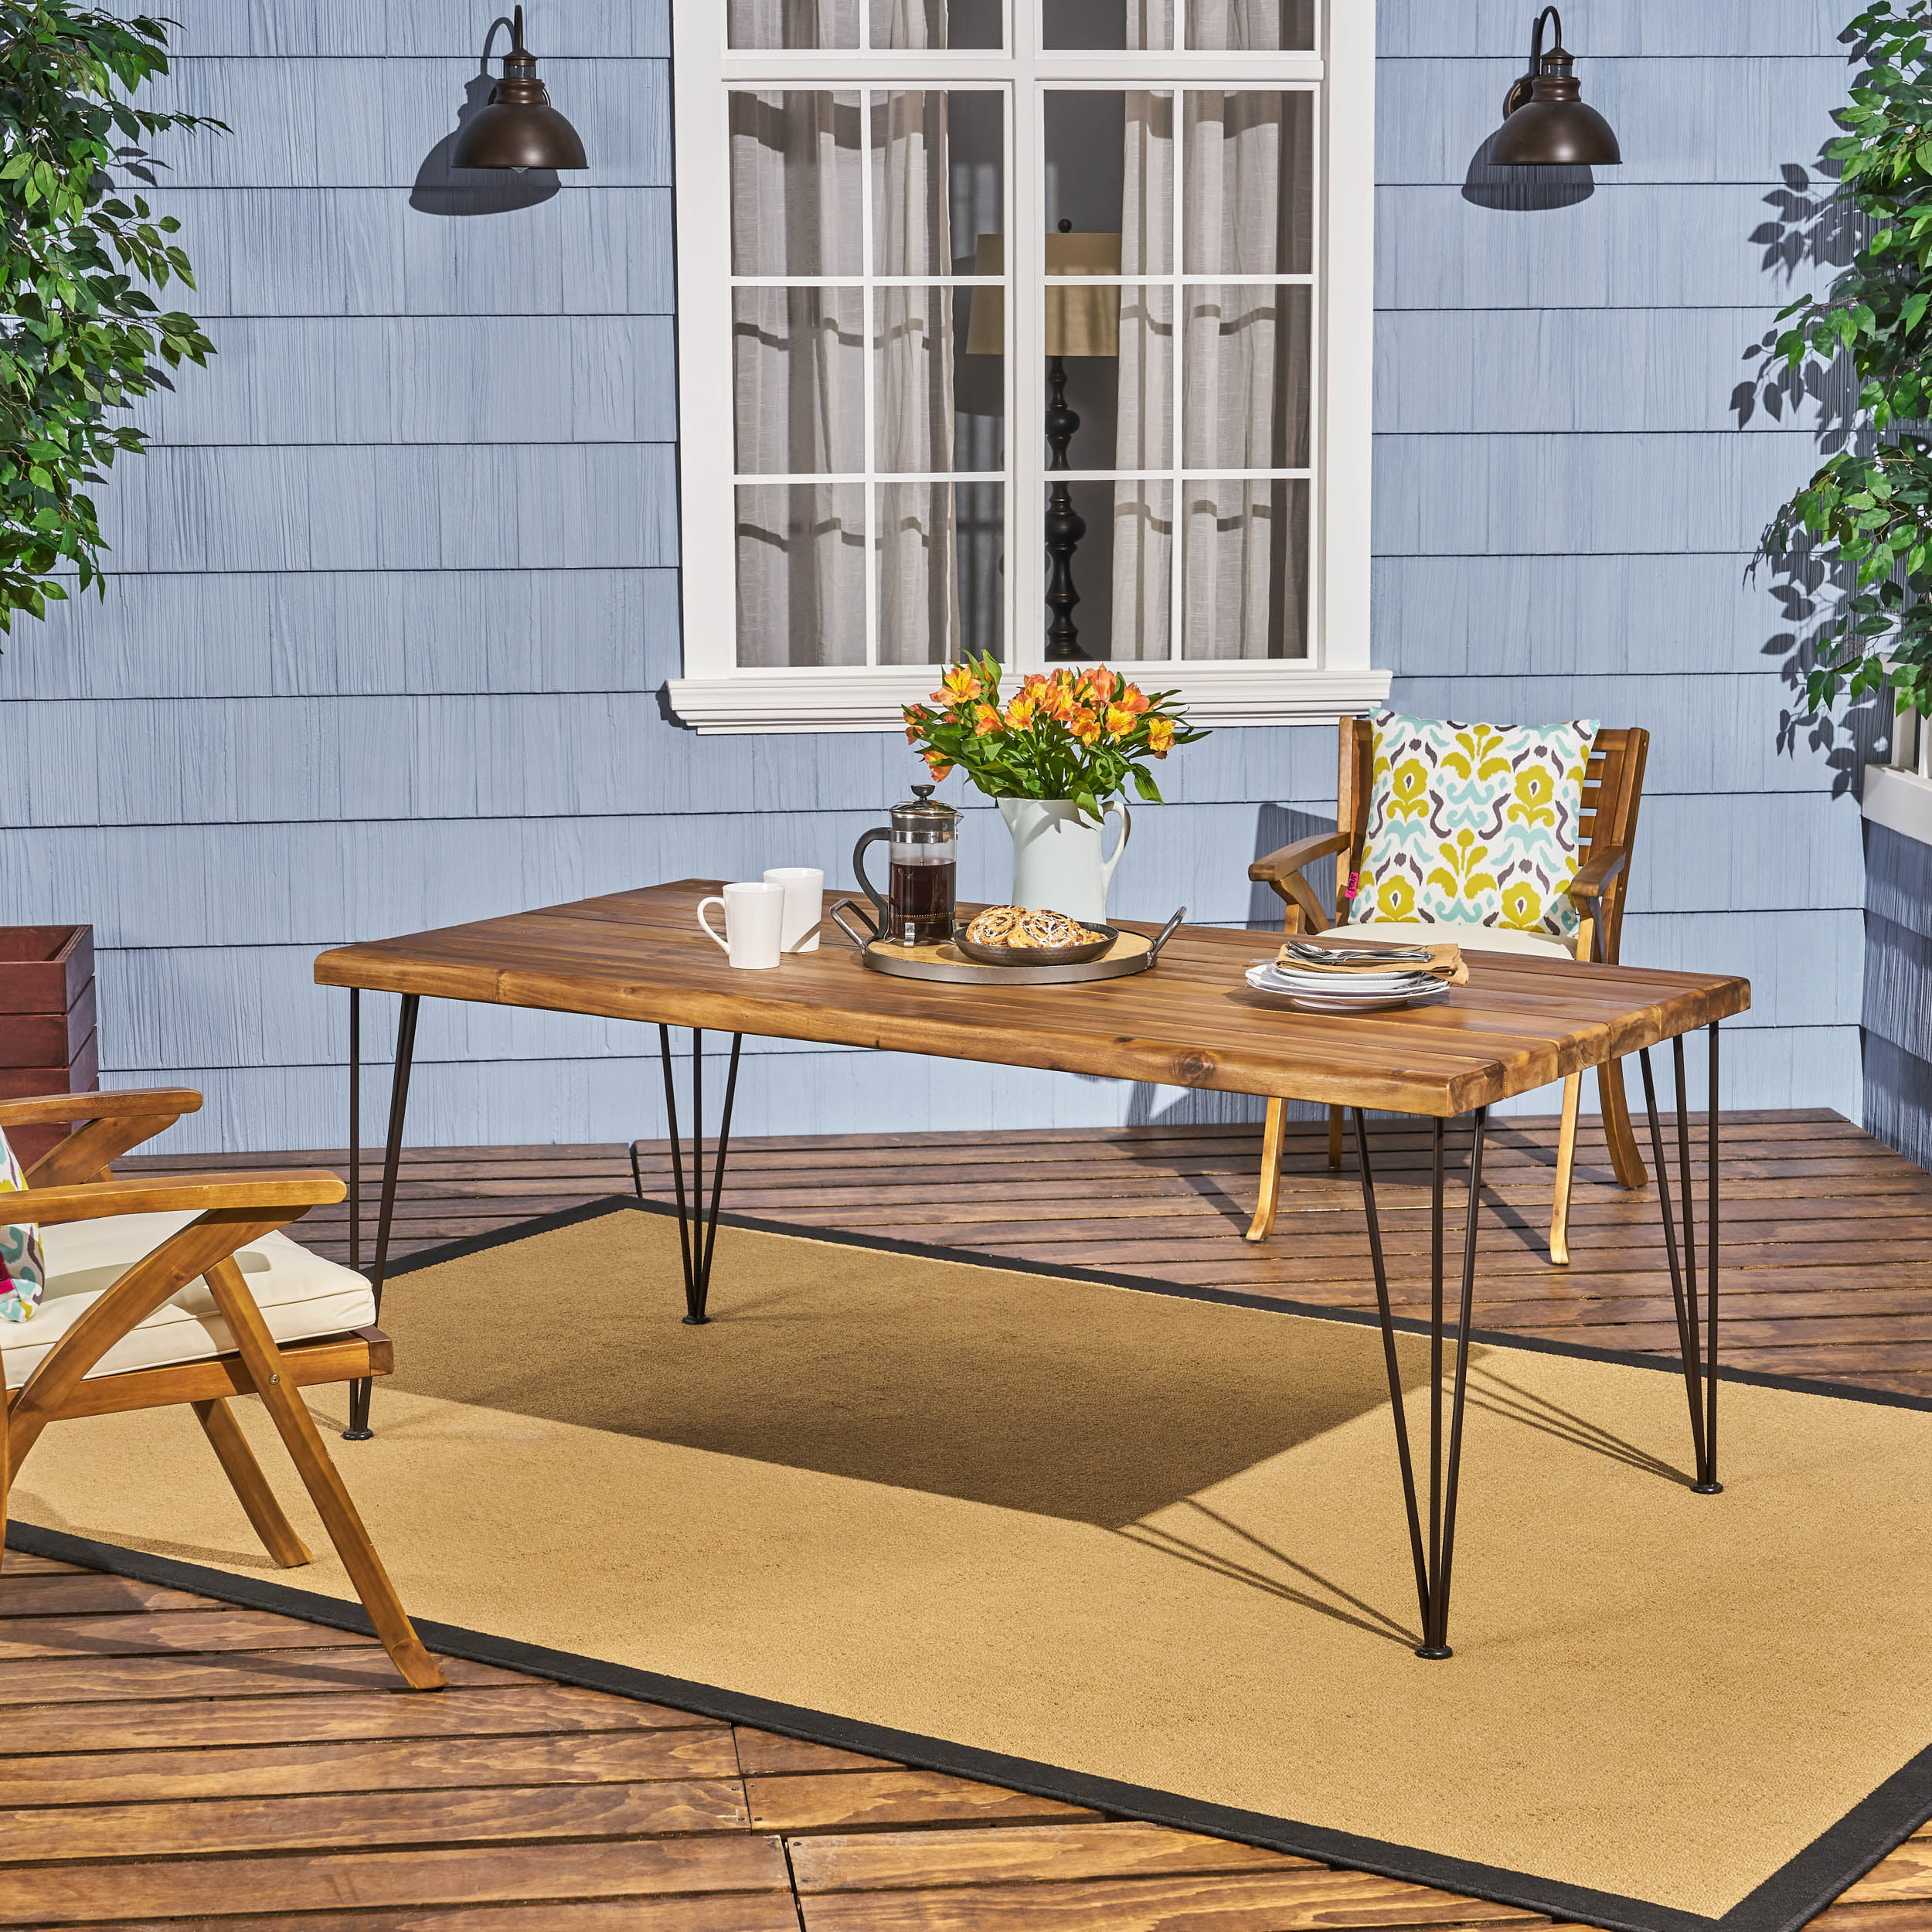 Joy Zion Outdoor Acacia Wood Rectangular Dining Table with Iron Hairpin Legs, Teak, Rustic Metal by Noble House